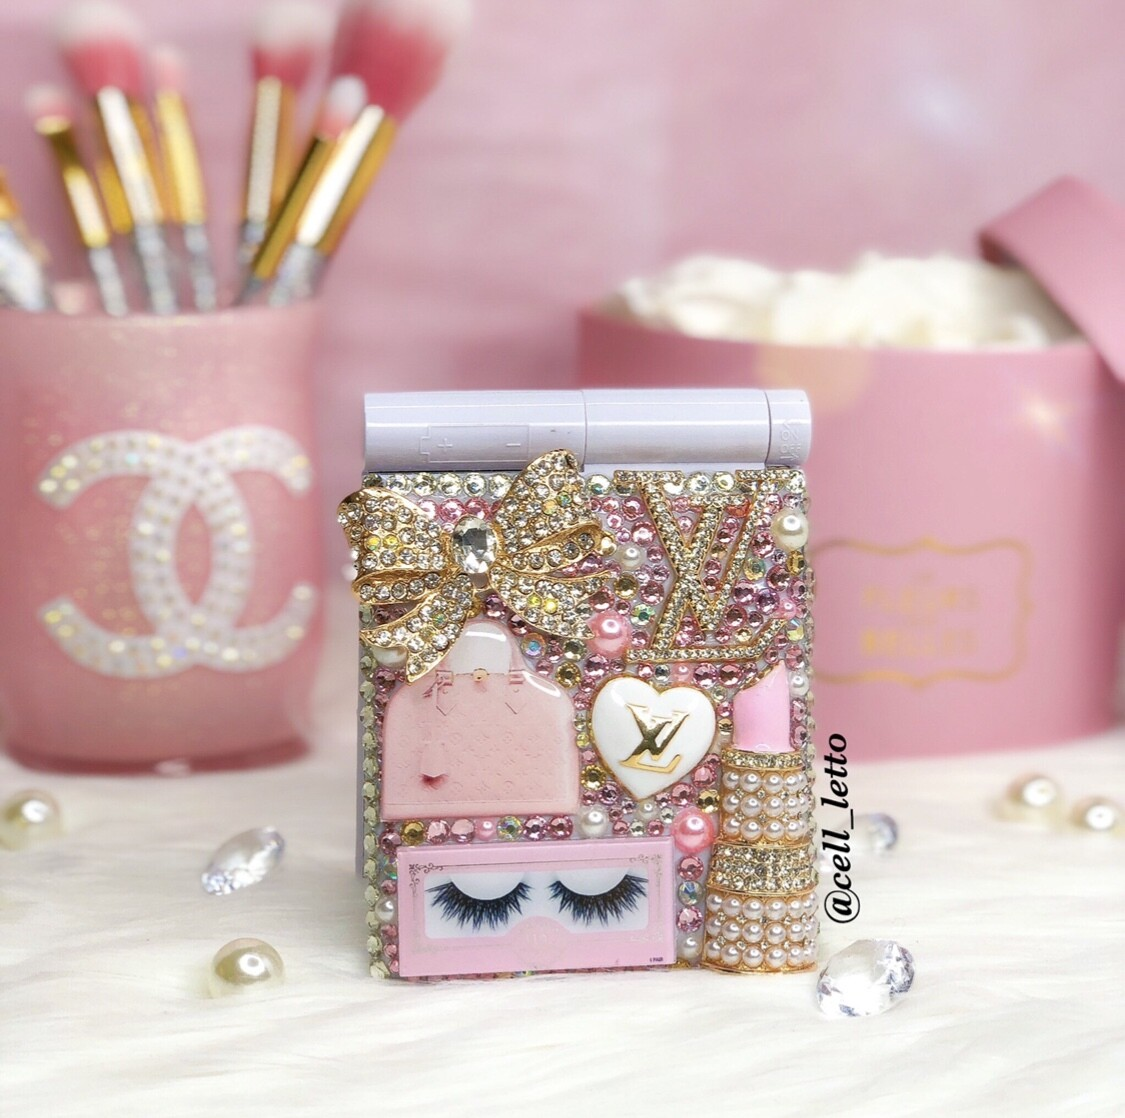 Girly Designer-Inspired LED Compact Mirror